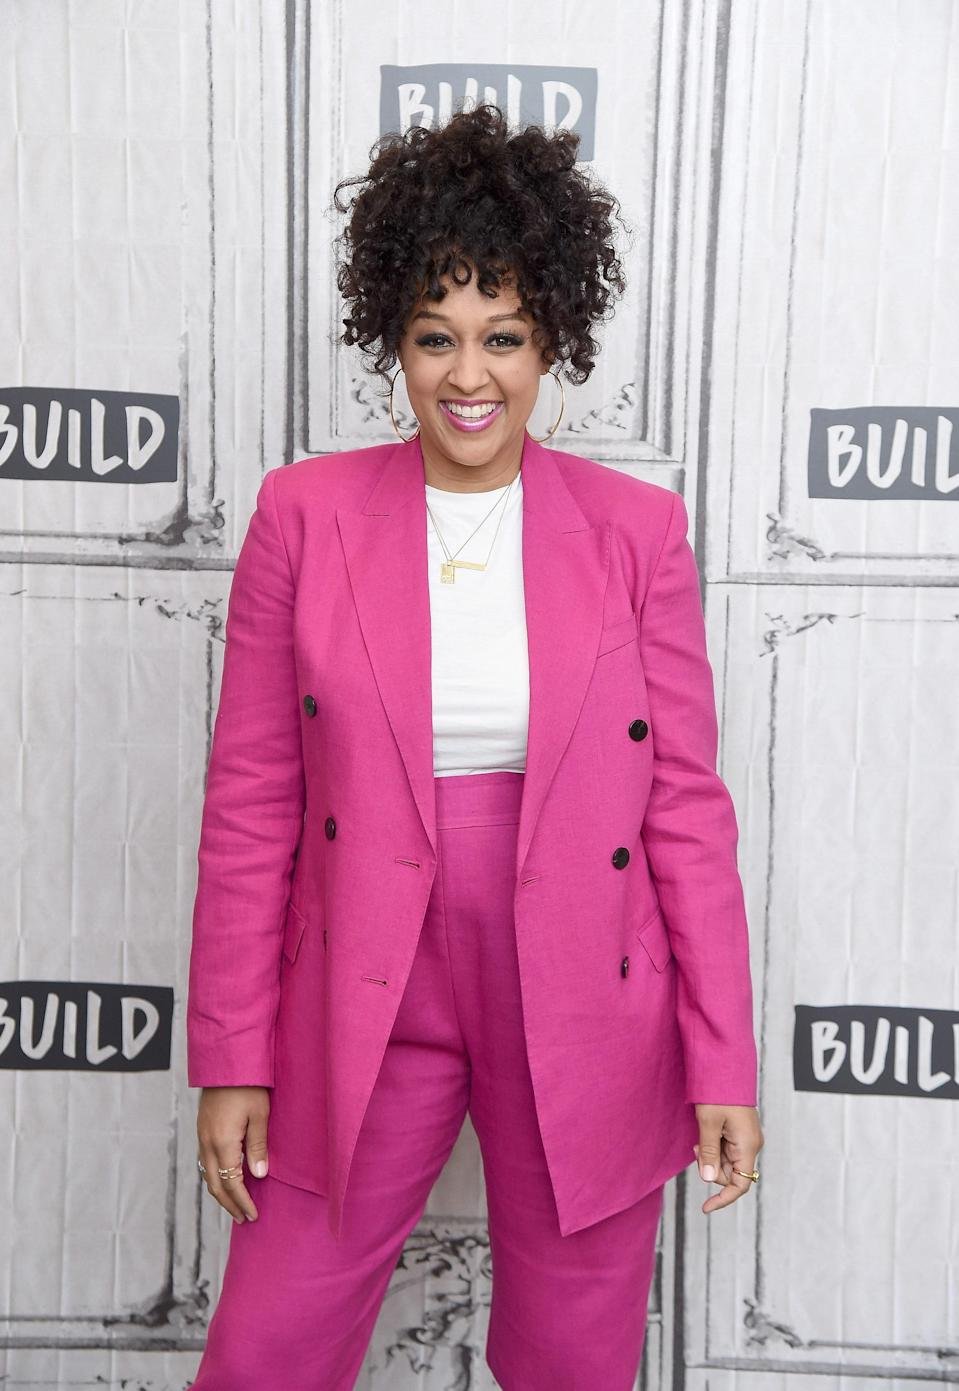 """<p>There's a problem if there's more drama happening behind the scenes than in front of the camera. For Tia Mowry-Hardict, getting her hair done has been an emotionally painful experience.</p> <p>""""It's mind-blowing to me that we still have to—meaning Black actresses—have to fight to have Black hairdressers on set for us. There was one time in particular I was doing this movie and, my God, I was the lead. And after this person did my hair, I cried,"""" she <a href=""""https://apnews.com/298c0720f9594d05aeffae26802c7ac6"""" rel=""""nofollow noopener"""" target=""""_blank"""" data-ylk=""""slk:admitted"""" class=""""link rapid-noclick-resp"""">admitted</a>. """"I was like, 'I cannot go out there looking like this.' I just don't understand why you have to fight to get someone to understand the importance of that.""""</p>"""